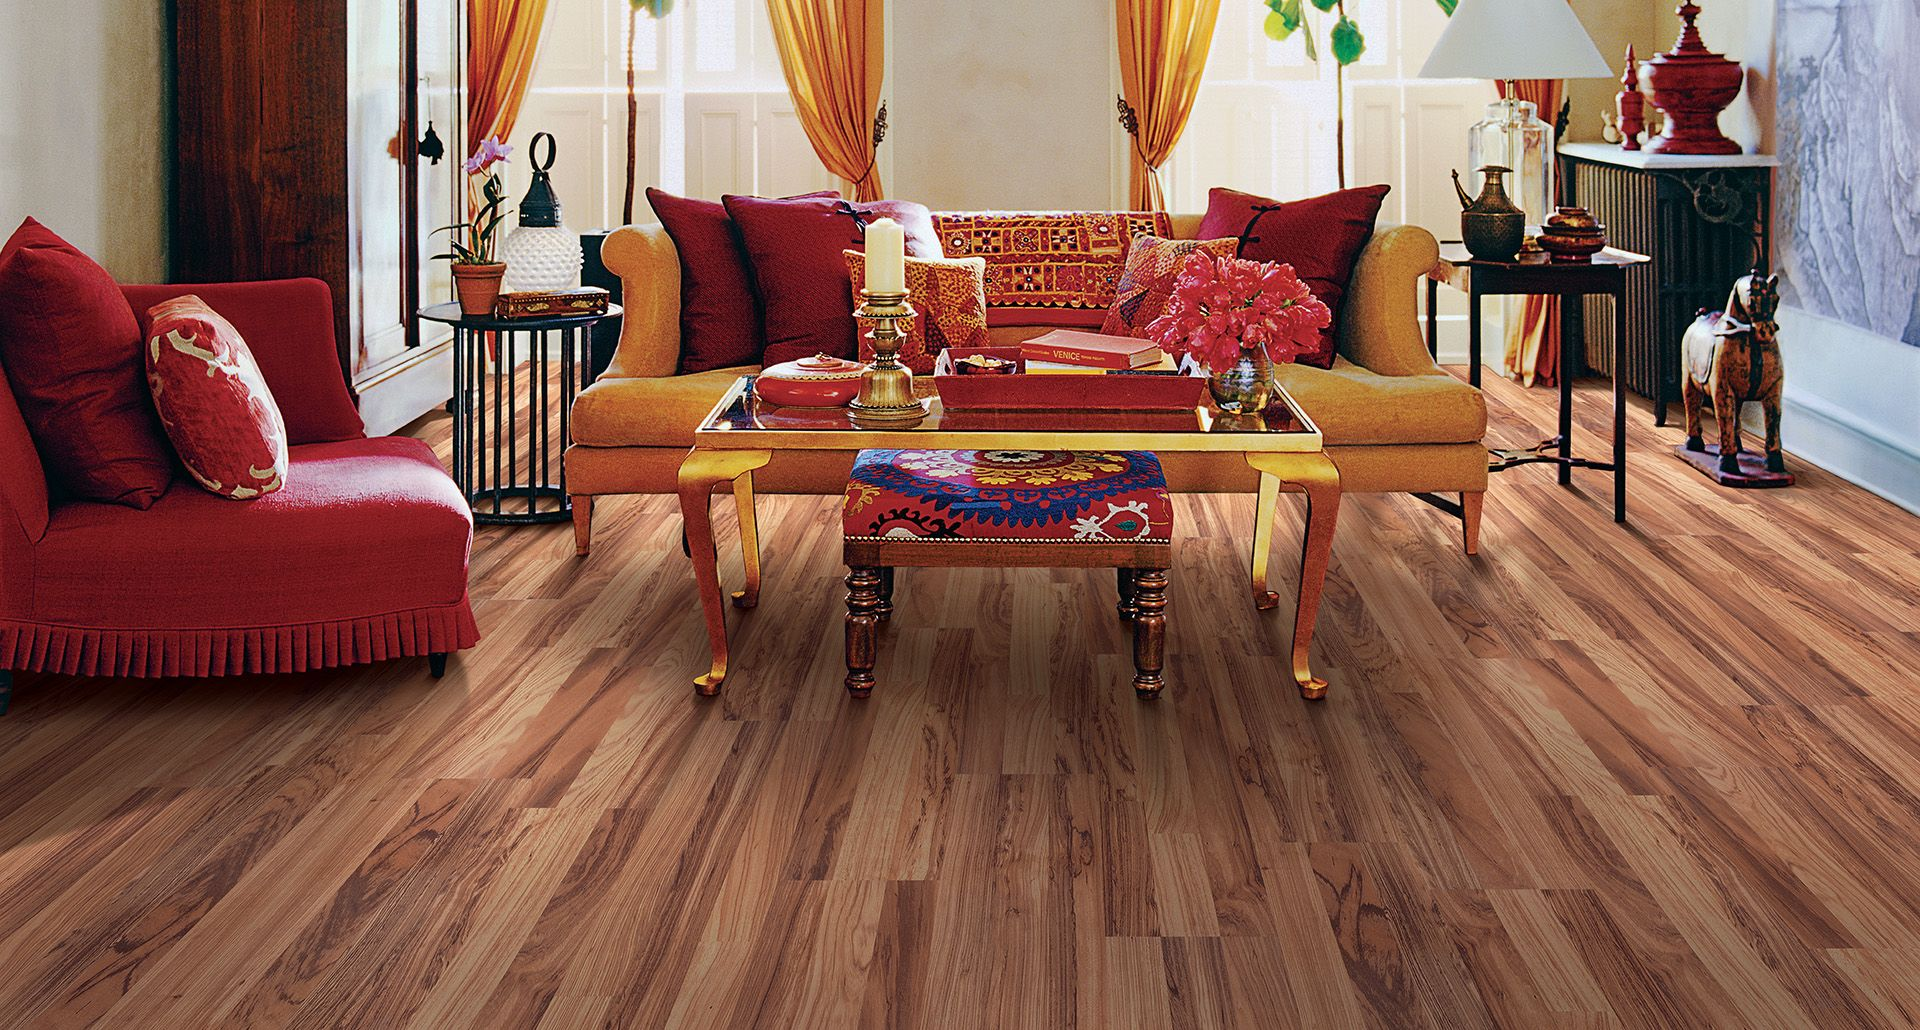 Australian Eucalyptus Smooth Laminate Floor Medium Wood Finish 8mm 3 Strip Plank Flooring Easy To Install And Covered By Pergo S